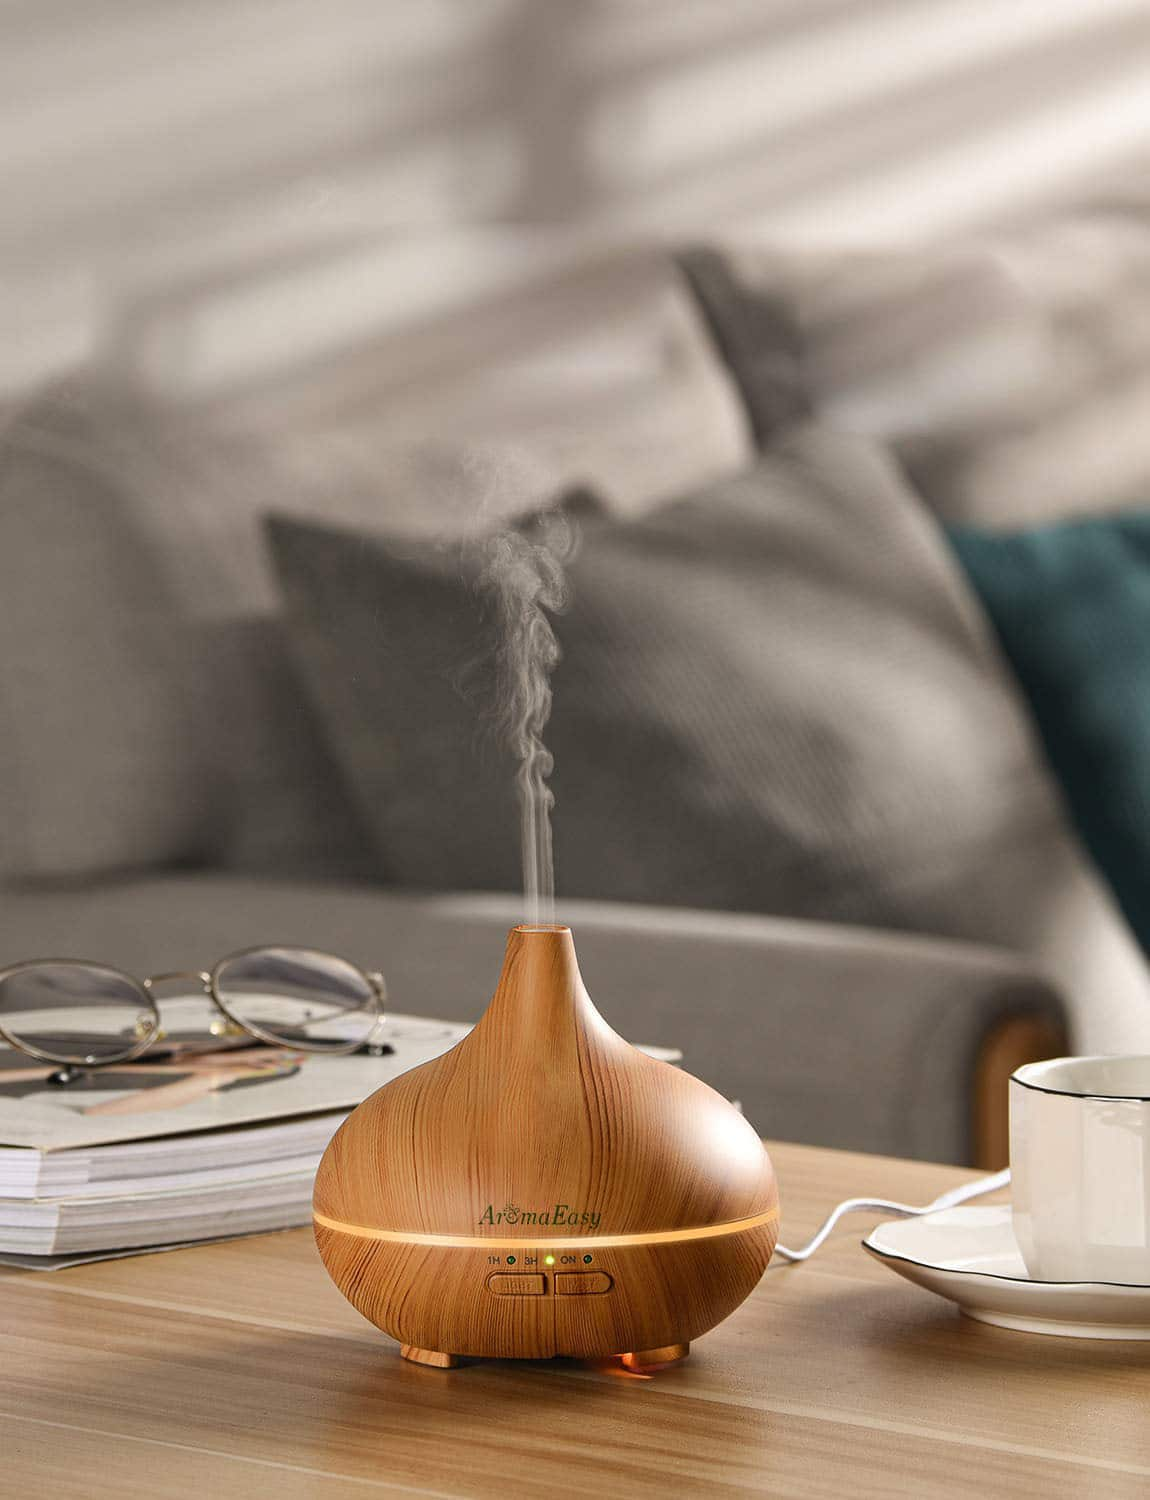 essential-oils-diffuser-cleaning-air